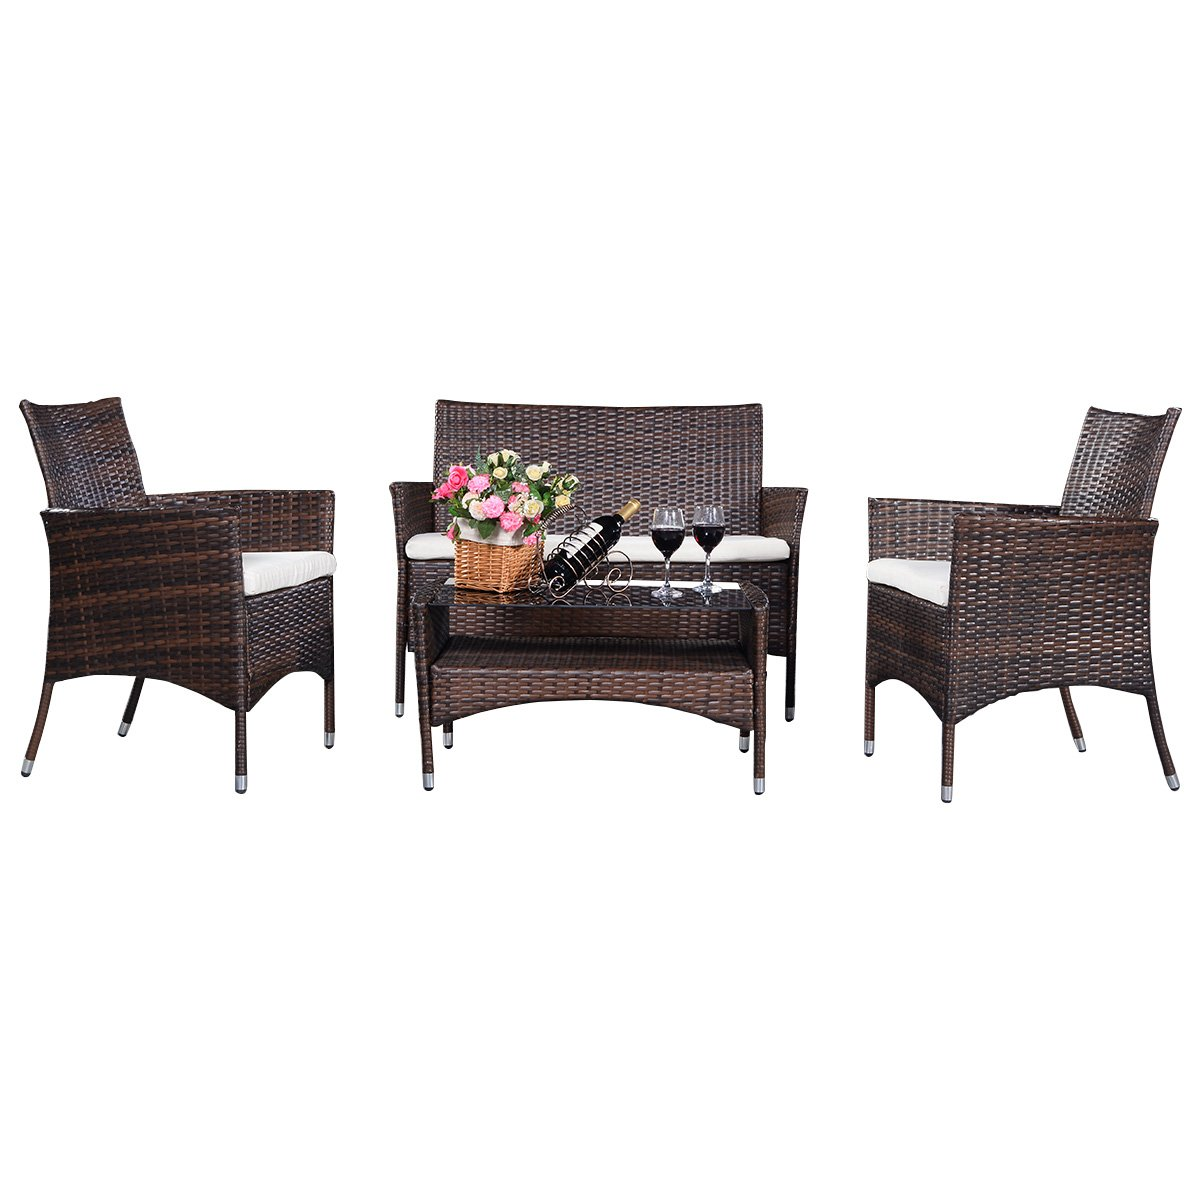 gartenm bel rattanm bel lounge set sitzgruppe sofa garnitur modern polyrattan 4tlg polyratten. Black Bedroom Furniture Sets. Home Design Ideas